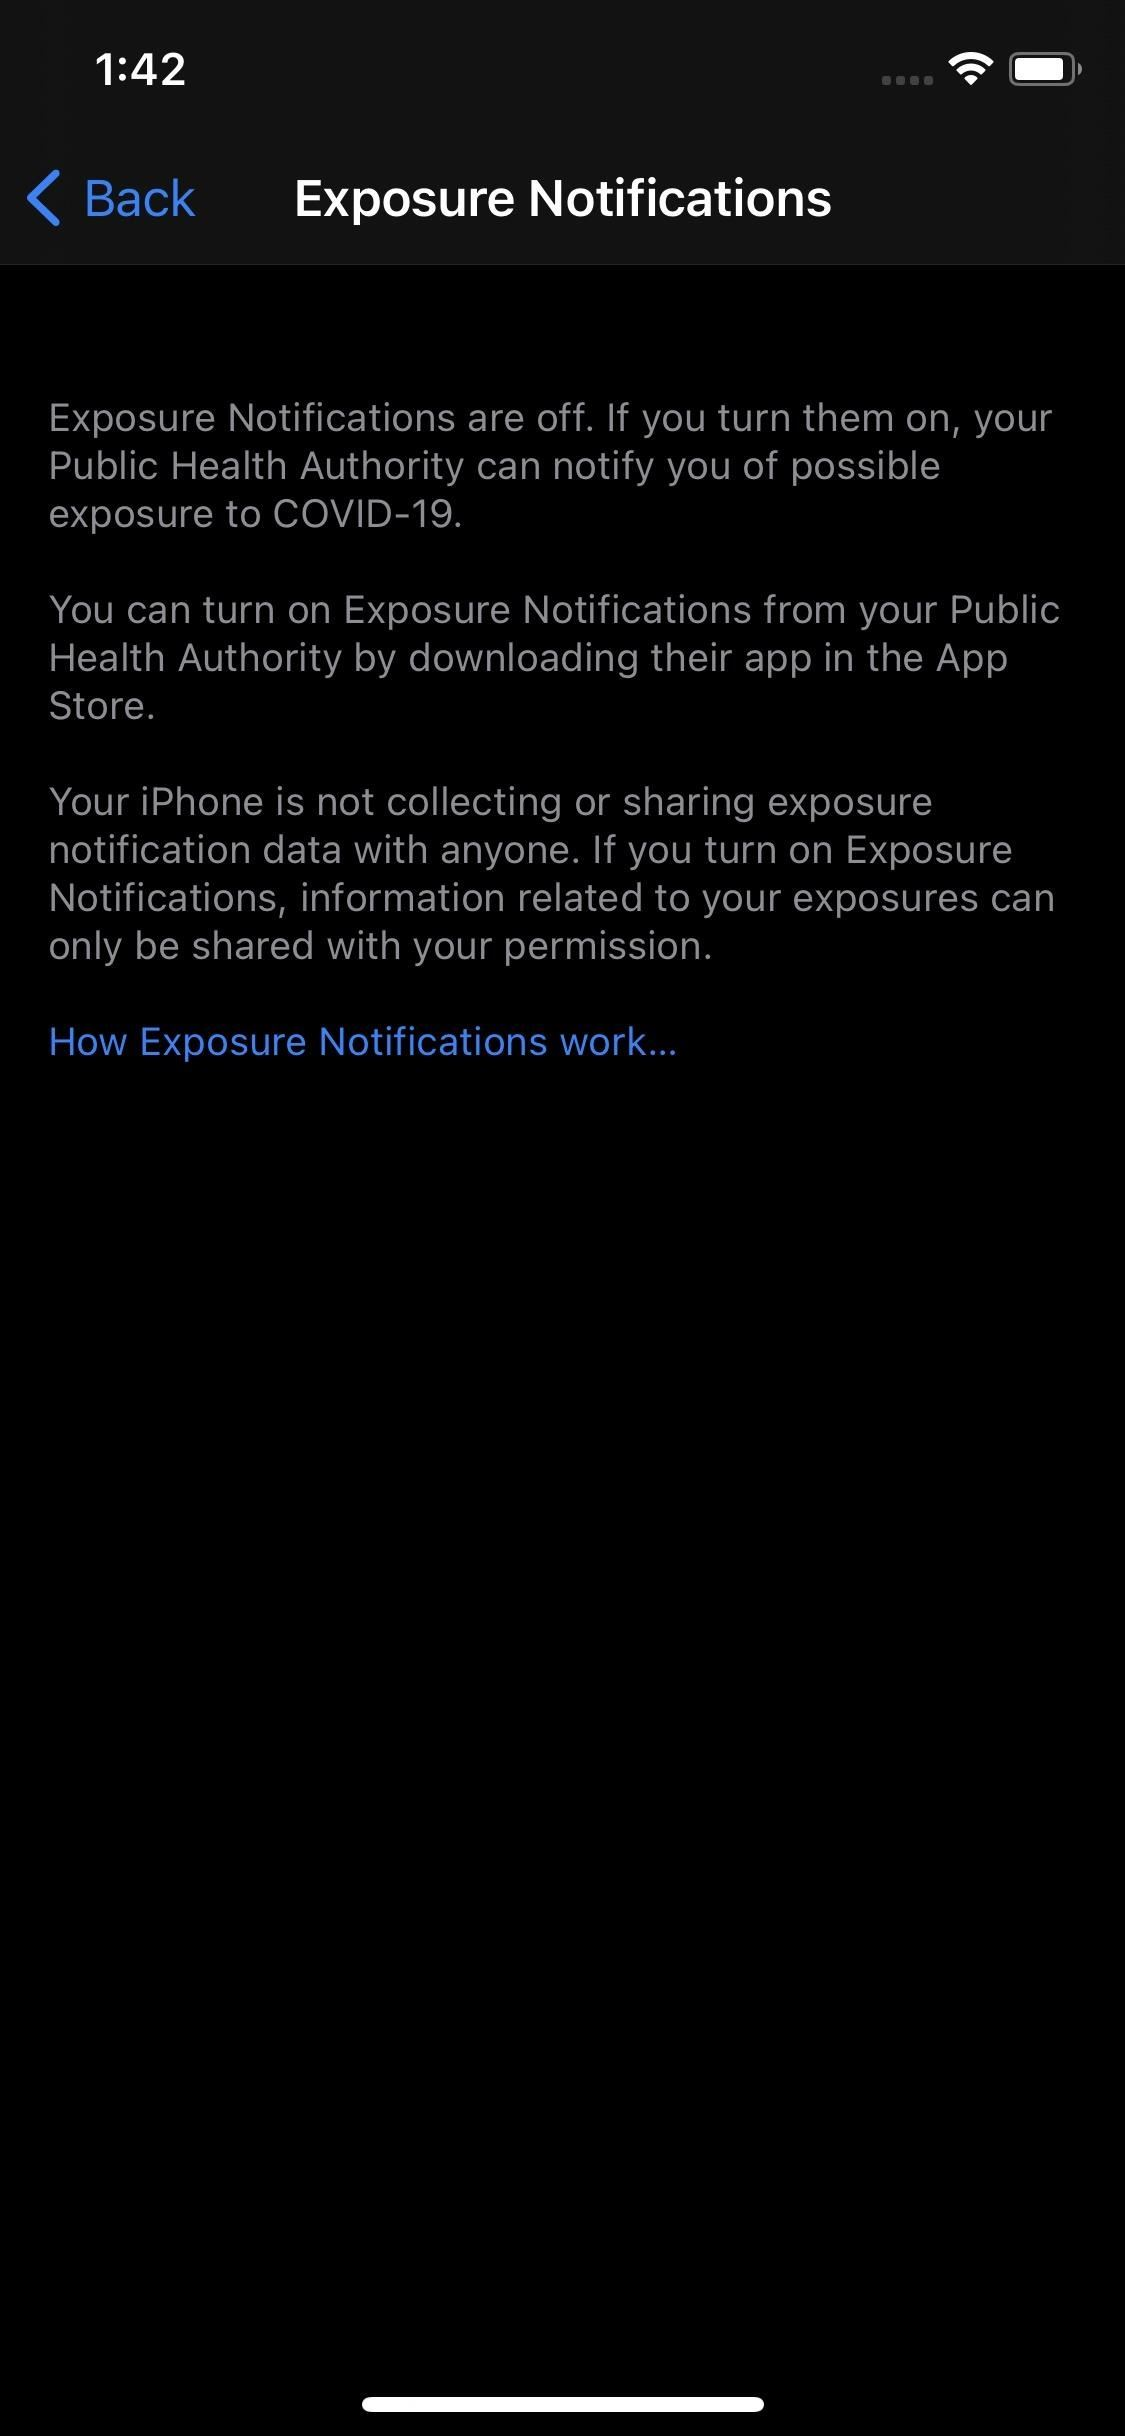 Apple Releases iOS 14 Public Beta 4 for iPhone, Includes COVID-19 Exposure Notifications Settings Page & TV Widget